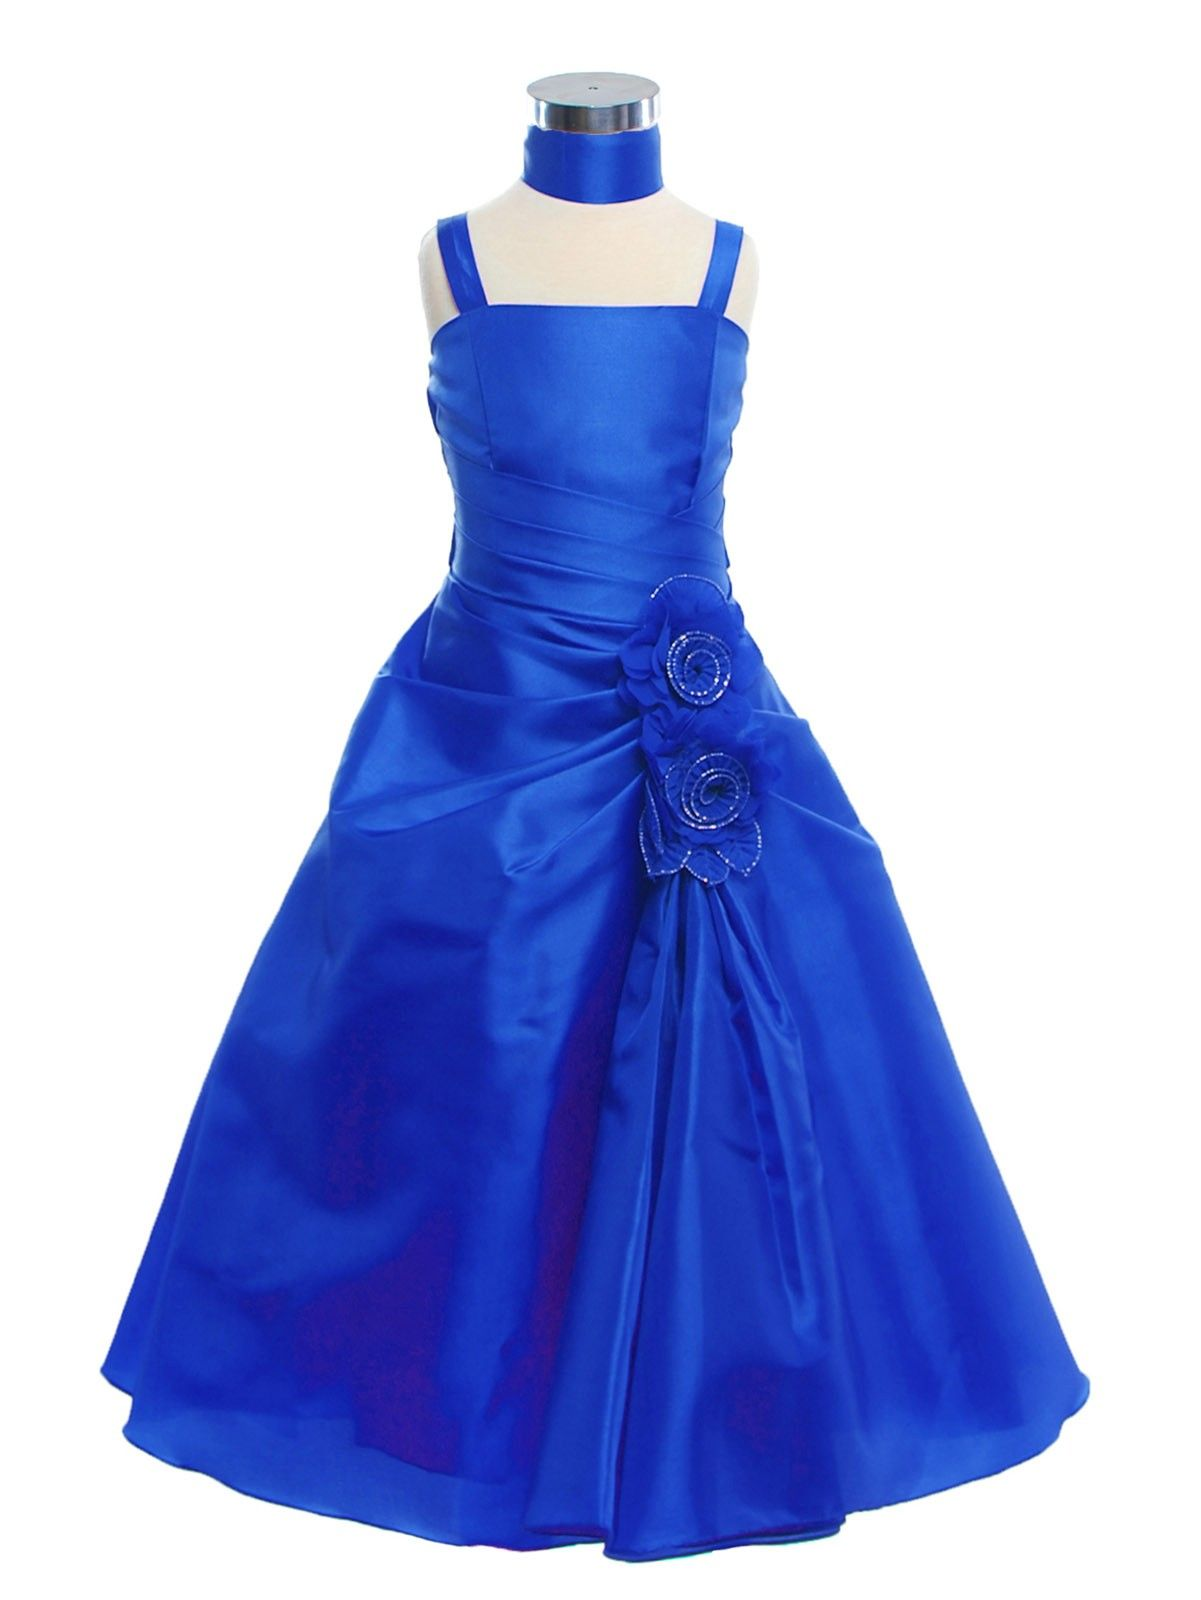 Royal Blue Dresses For Girls New And Popular Blue Flower Girl